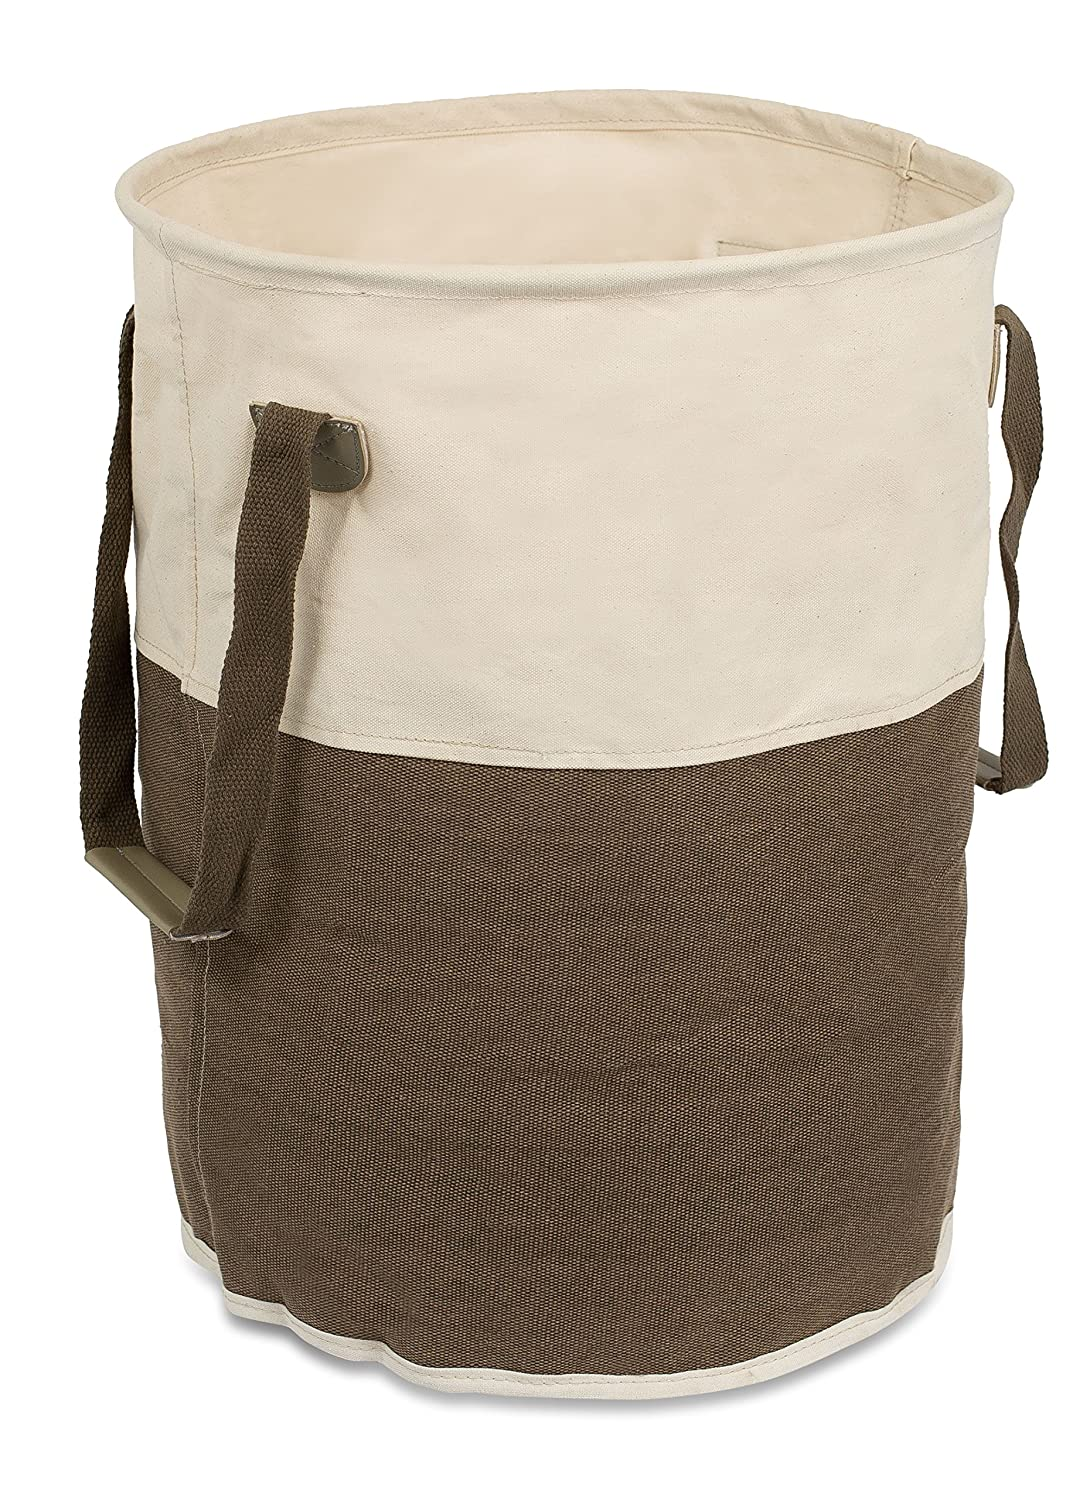 BirdRock Home Round Cloth Laundry Hamper with Handles   Dirty Clothes Sorter   Easy Storage   Foldable   Brown and White Canvas